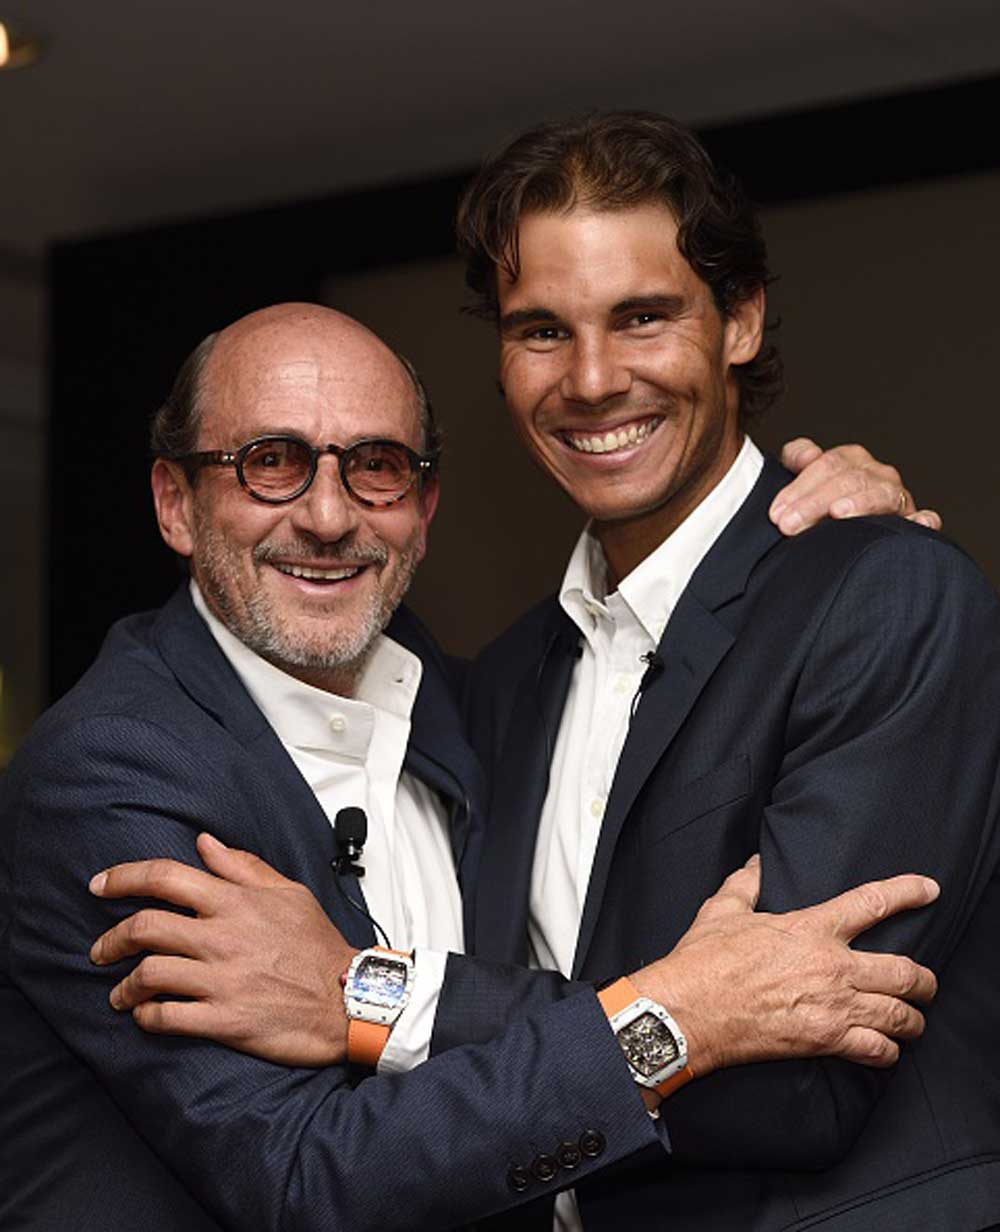 Richard Mille and Nadal wearing the RM 027-02